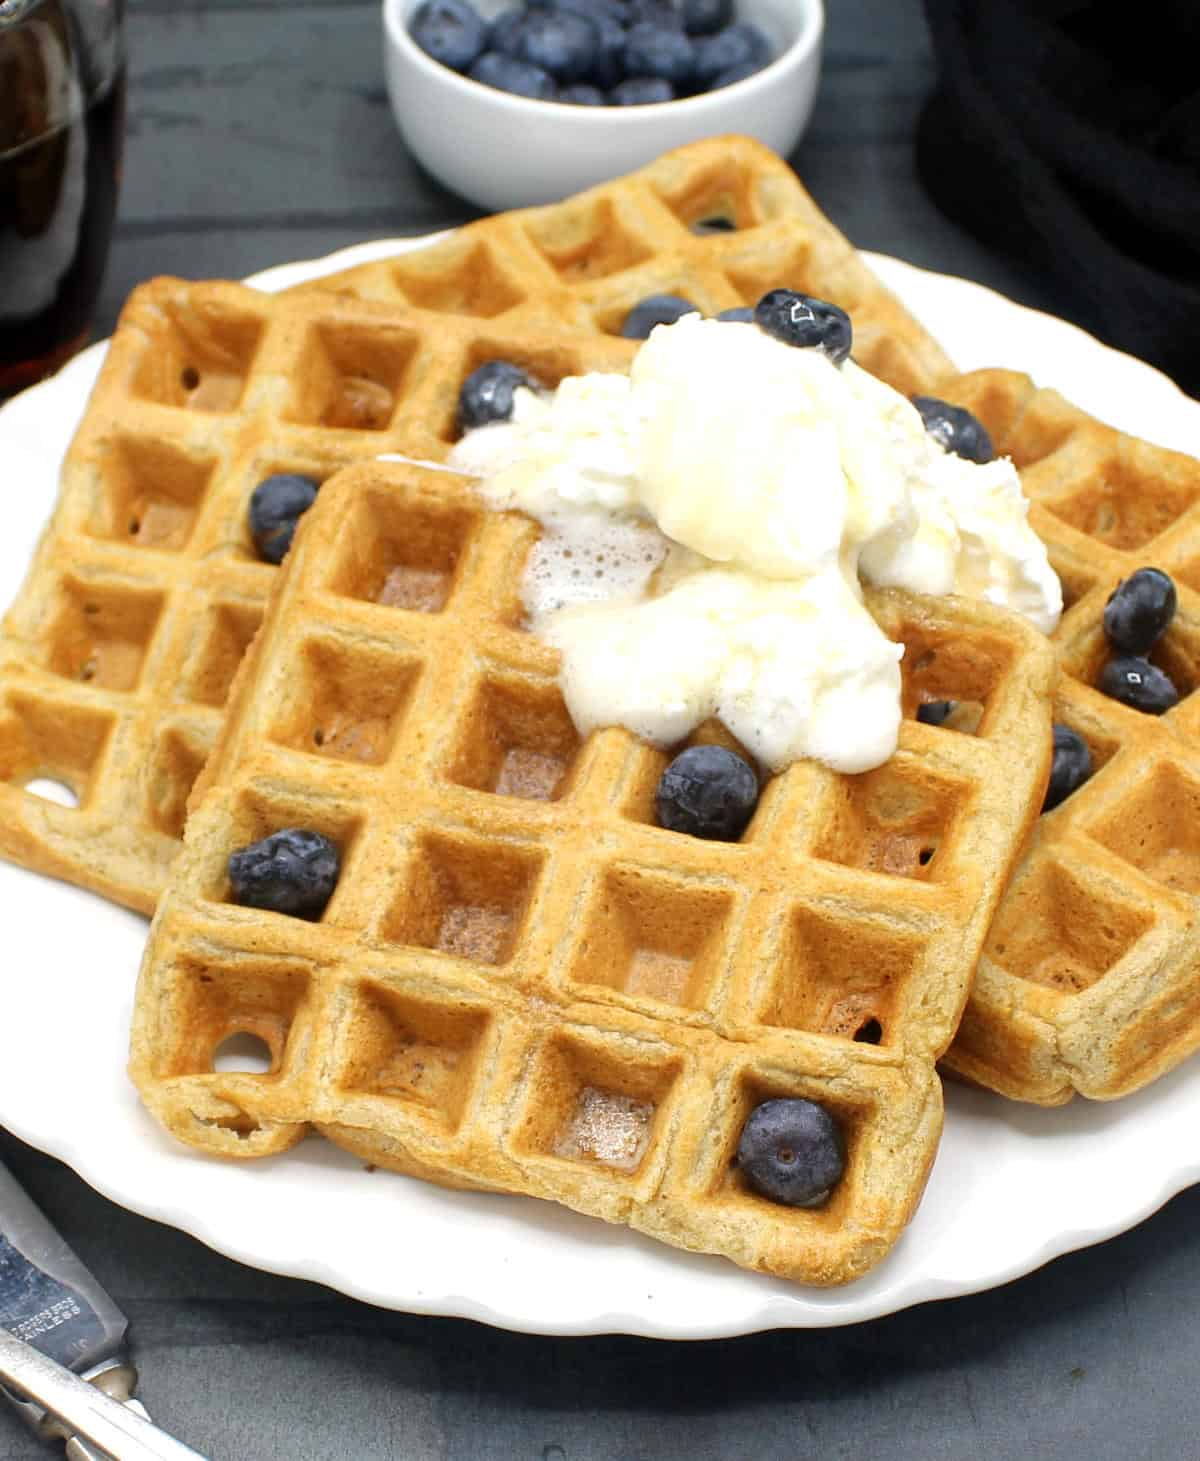 Closeup photo of four vegan waffles on a white plate with vegan whipped cream and blueberries.